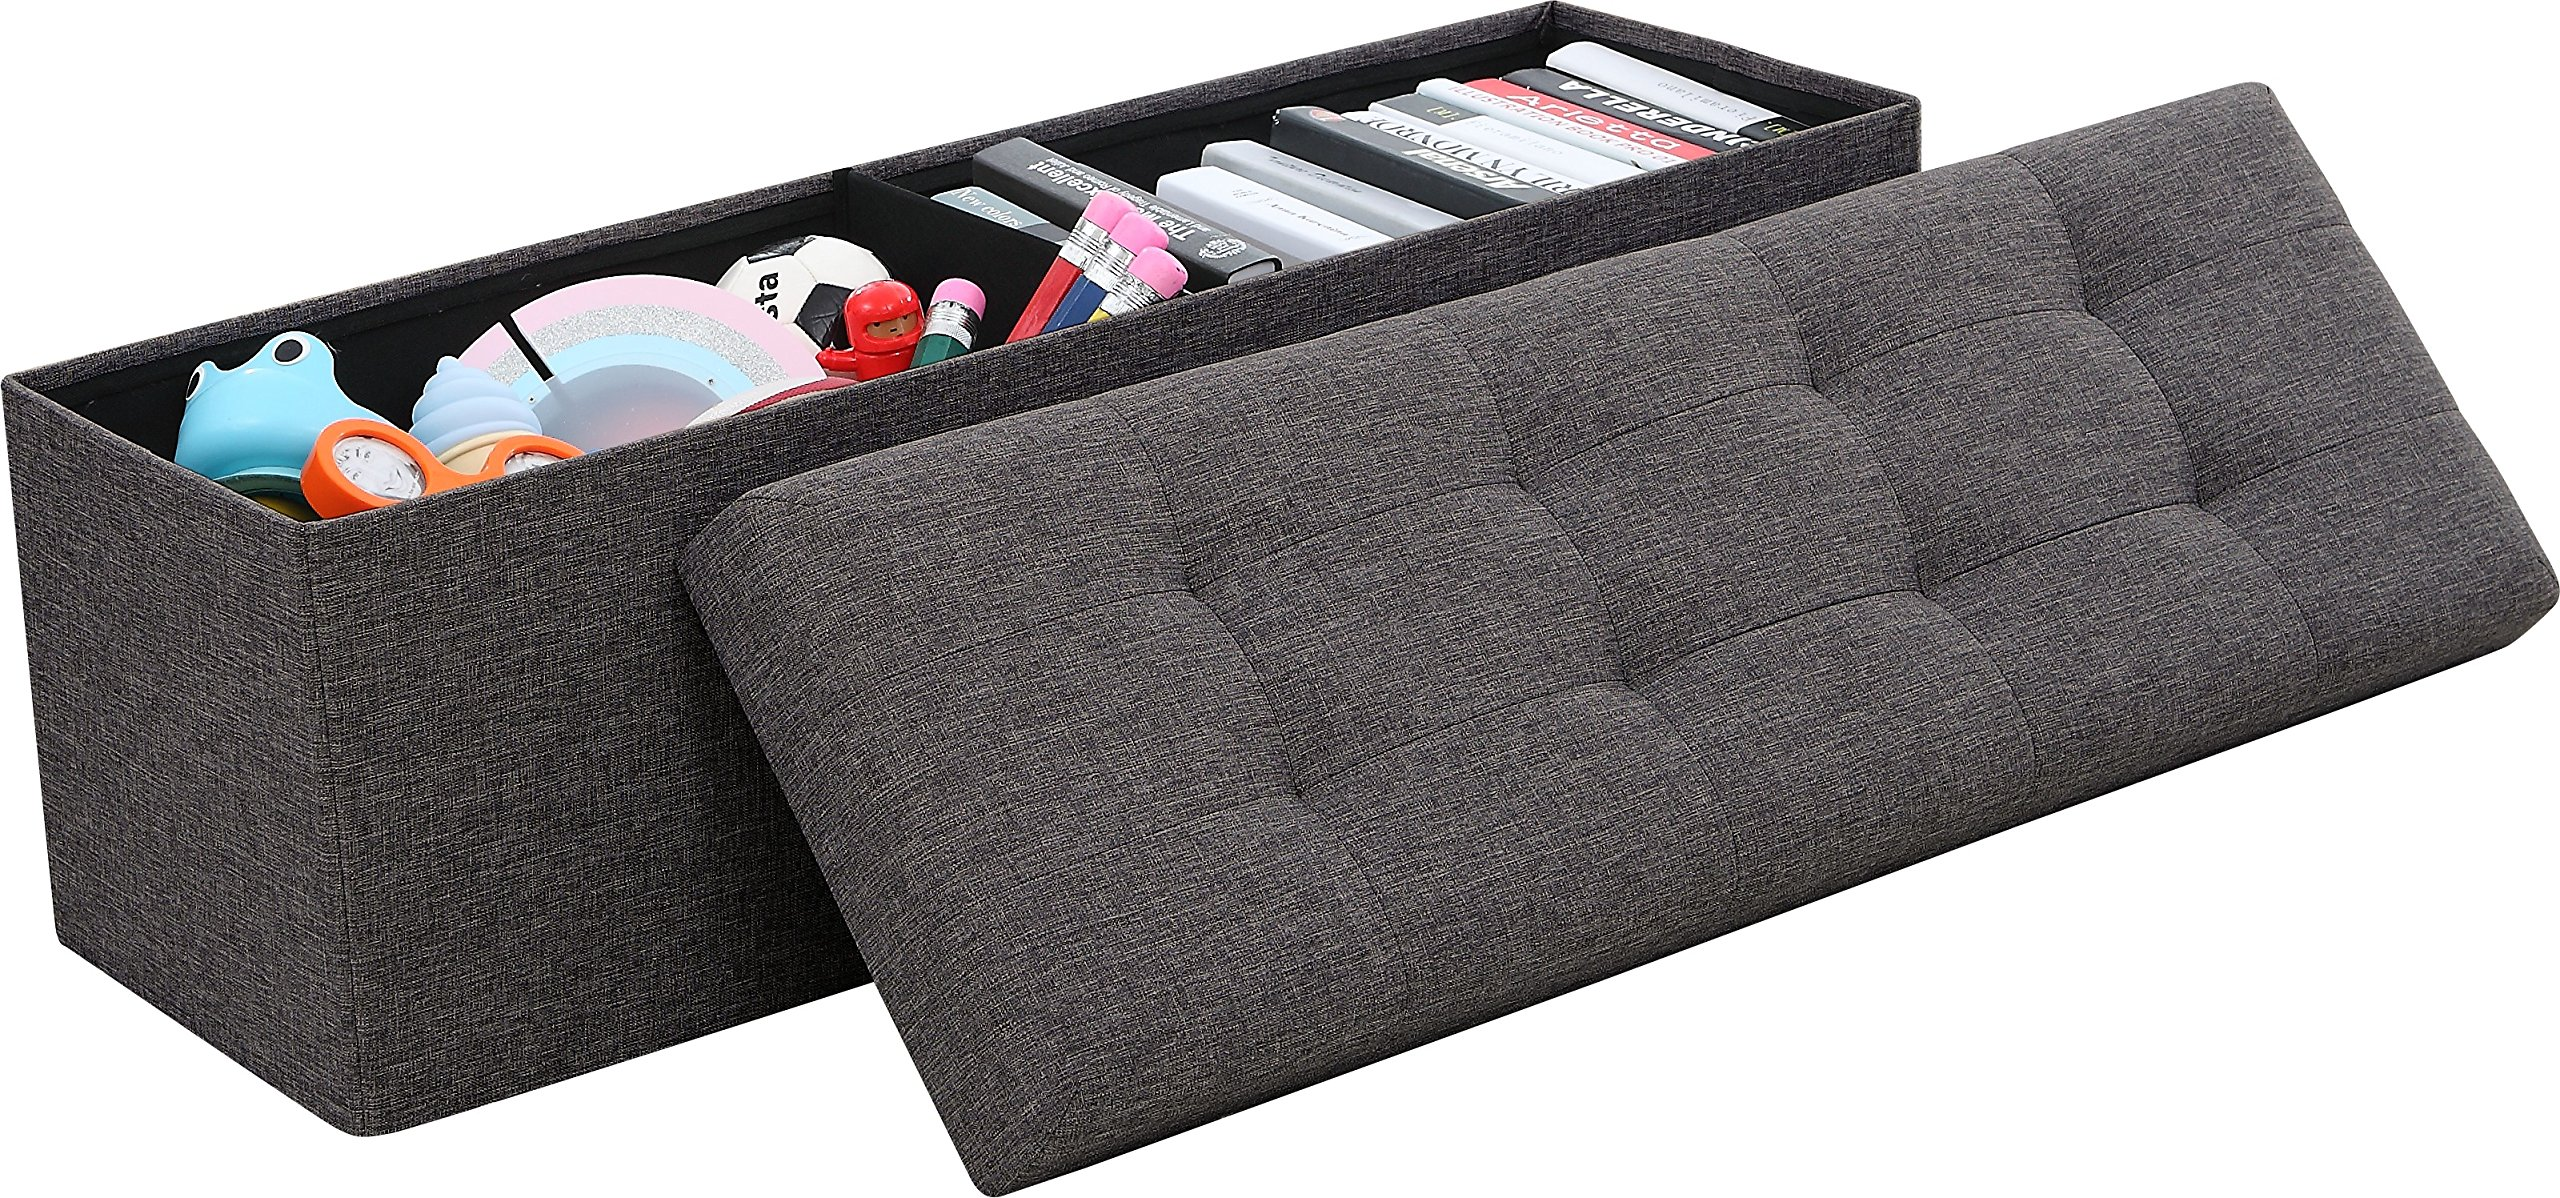 Ornavo Home  Foldable Tufted Linen Large Storage Ottoman Bench Foot Rest Stool/Seat - 15'' x 45'' x 15'' (Charcoal) by Ornavo Home